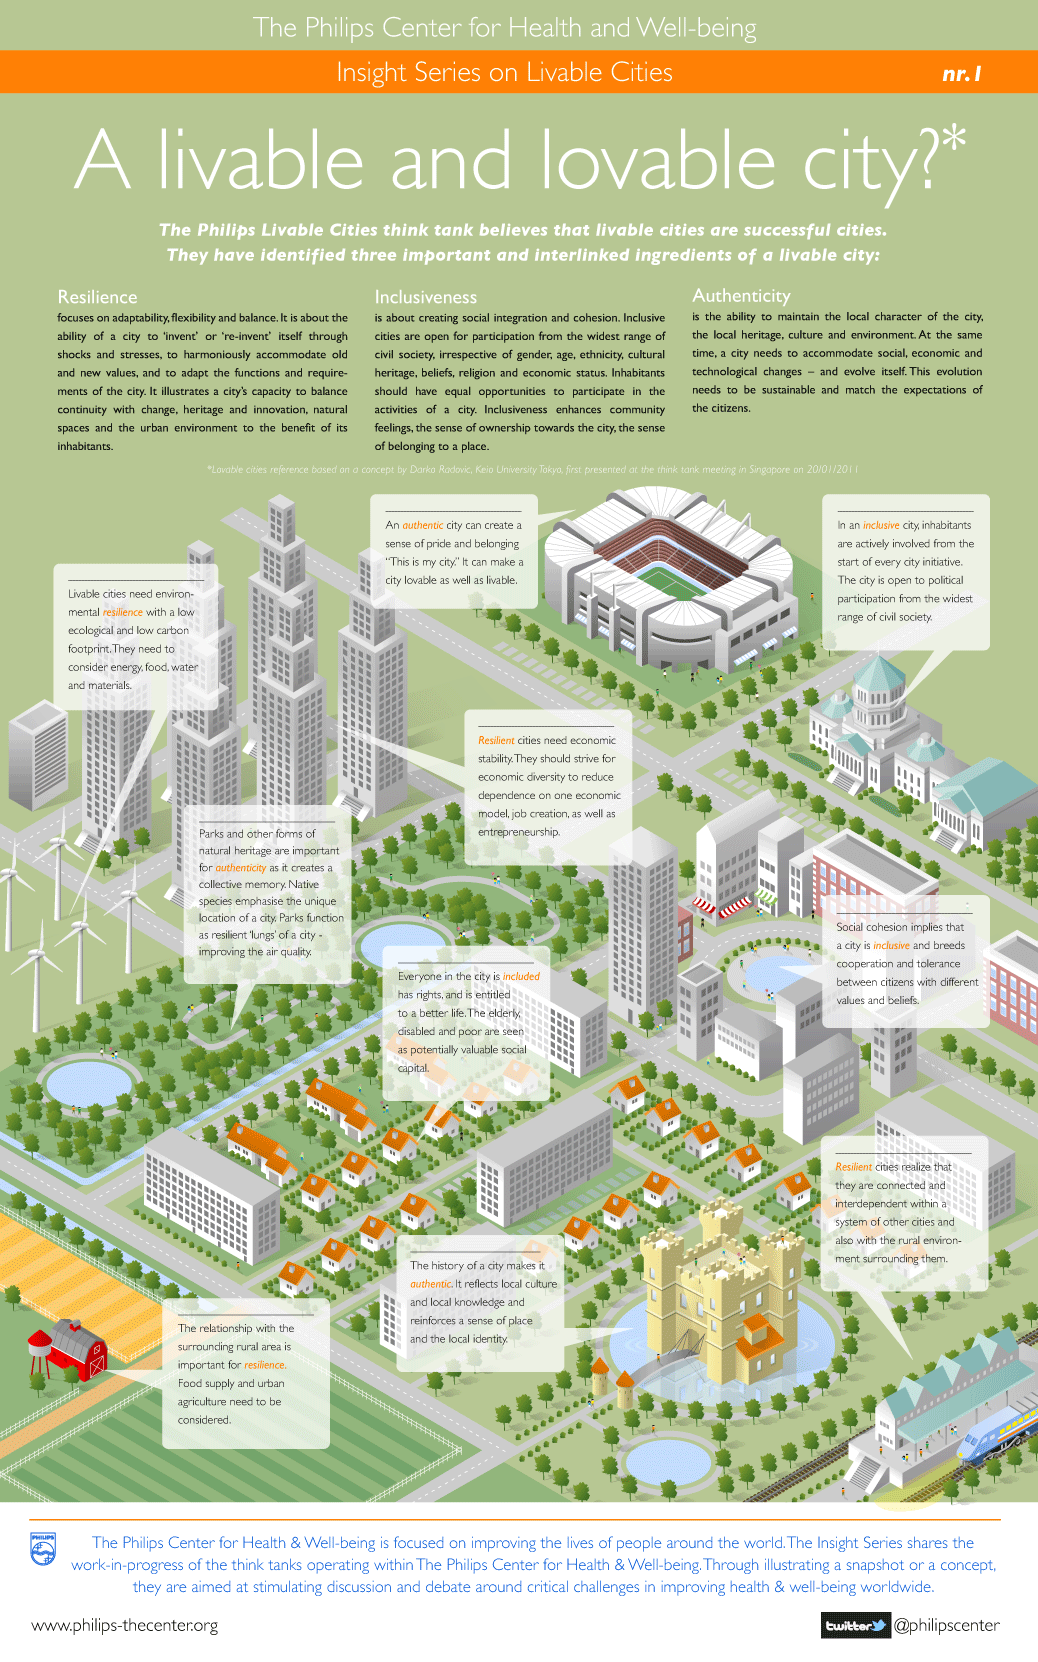 what makes a livable and lovable city